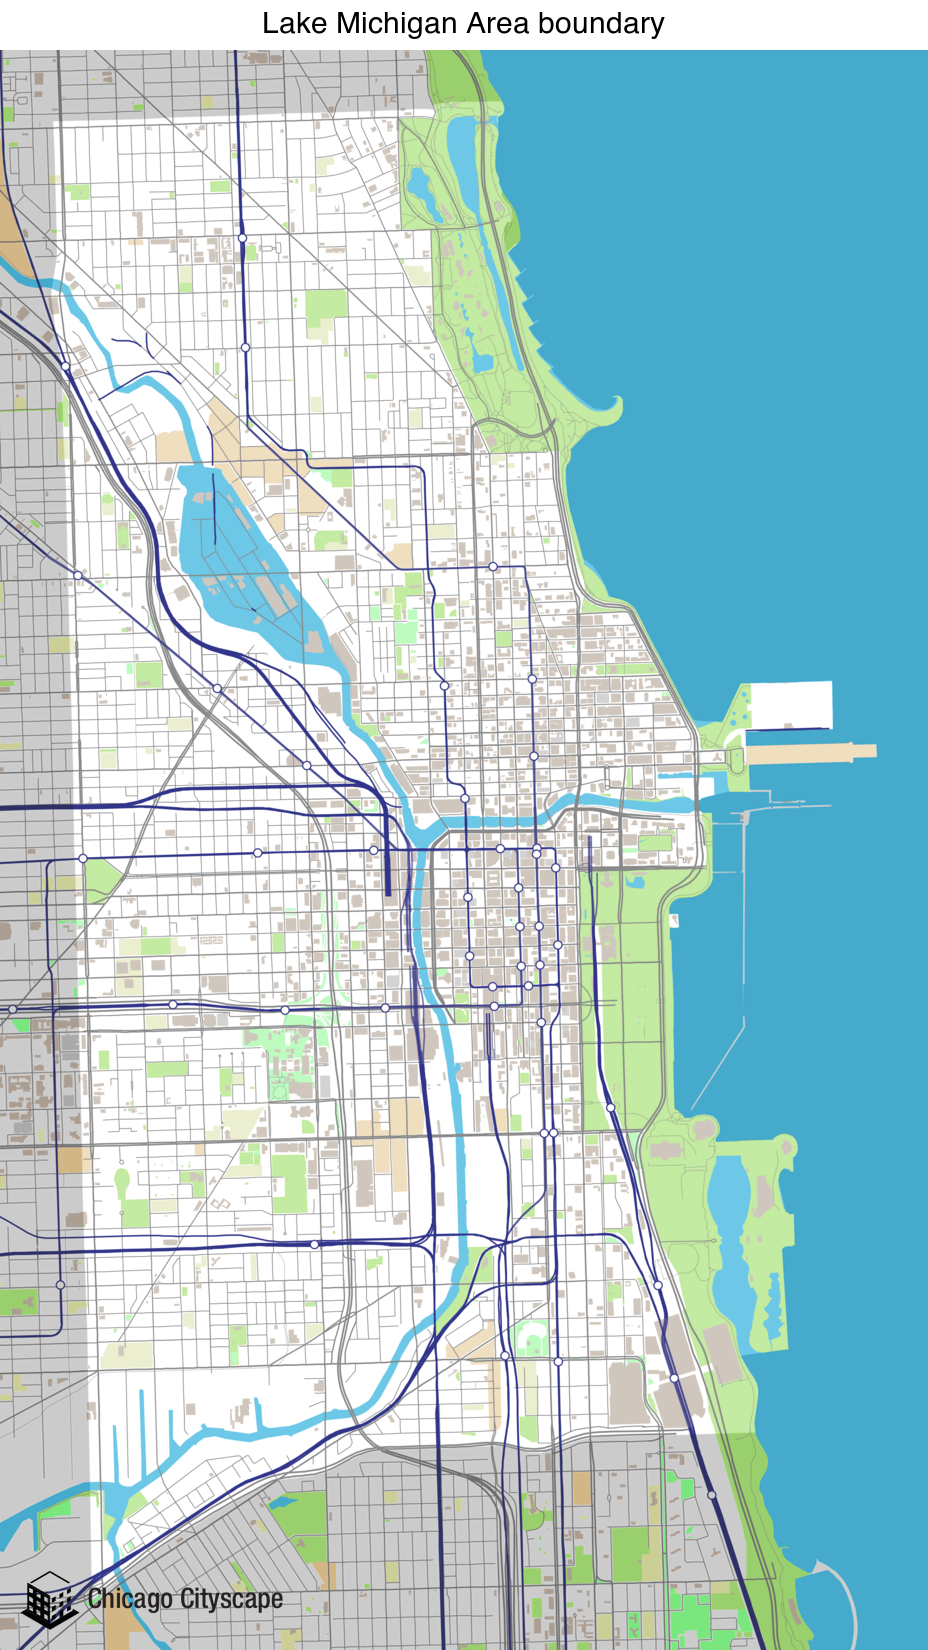 Chicago Cityscape Map Of Building Projects Properties And